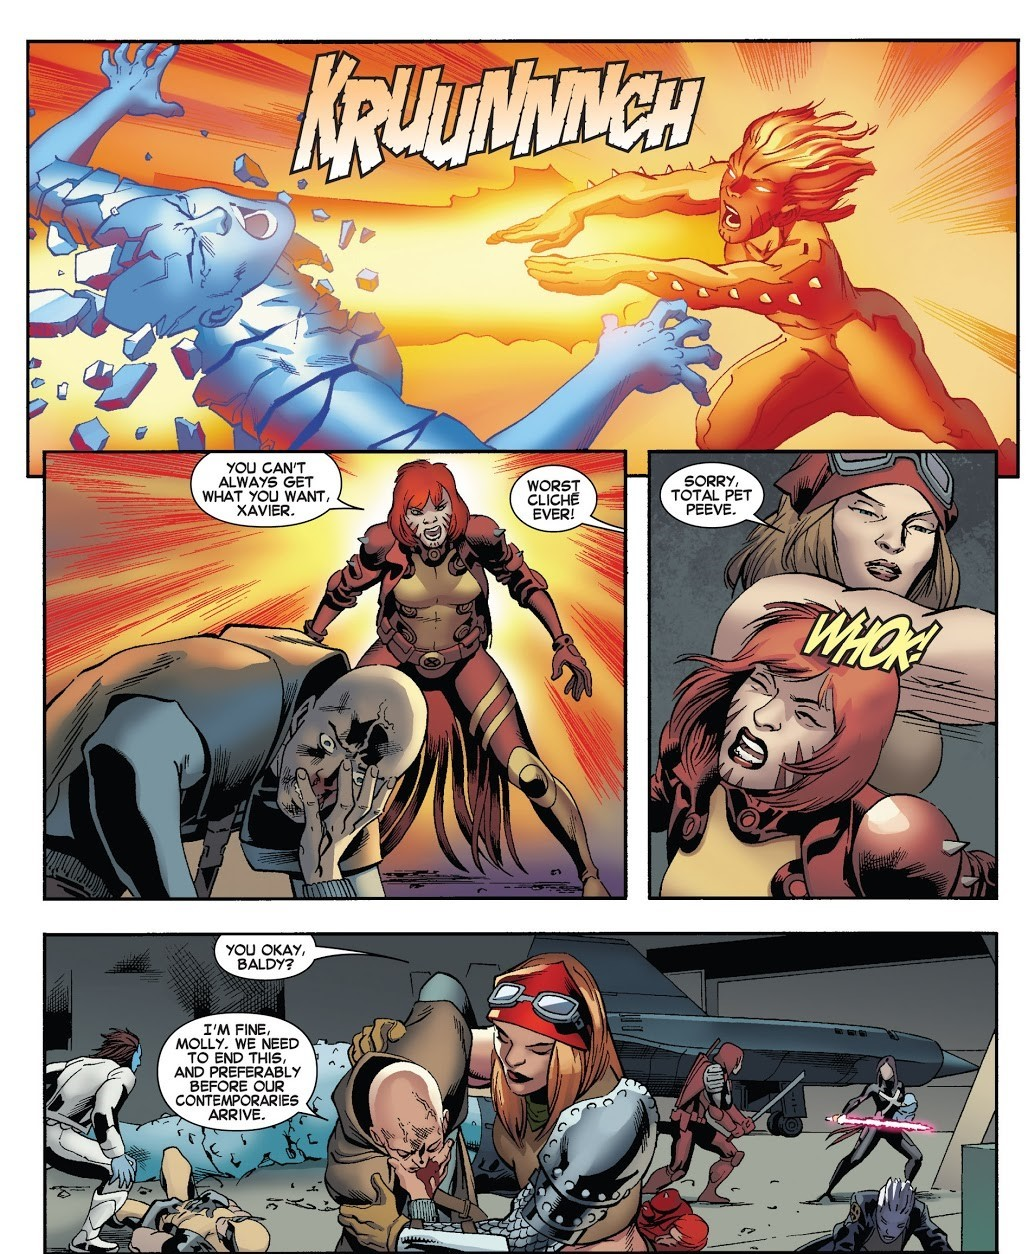 Charles Xavier Jr, a telepath capable of dominating multiple telepaths, while producing Psionic Constructs, controlling his teammates and combatting Teenage Jean Grey is overwhelmed by Rachel in one shot during Astral combat